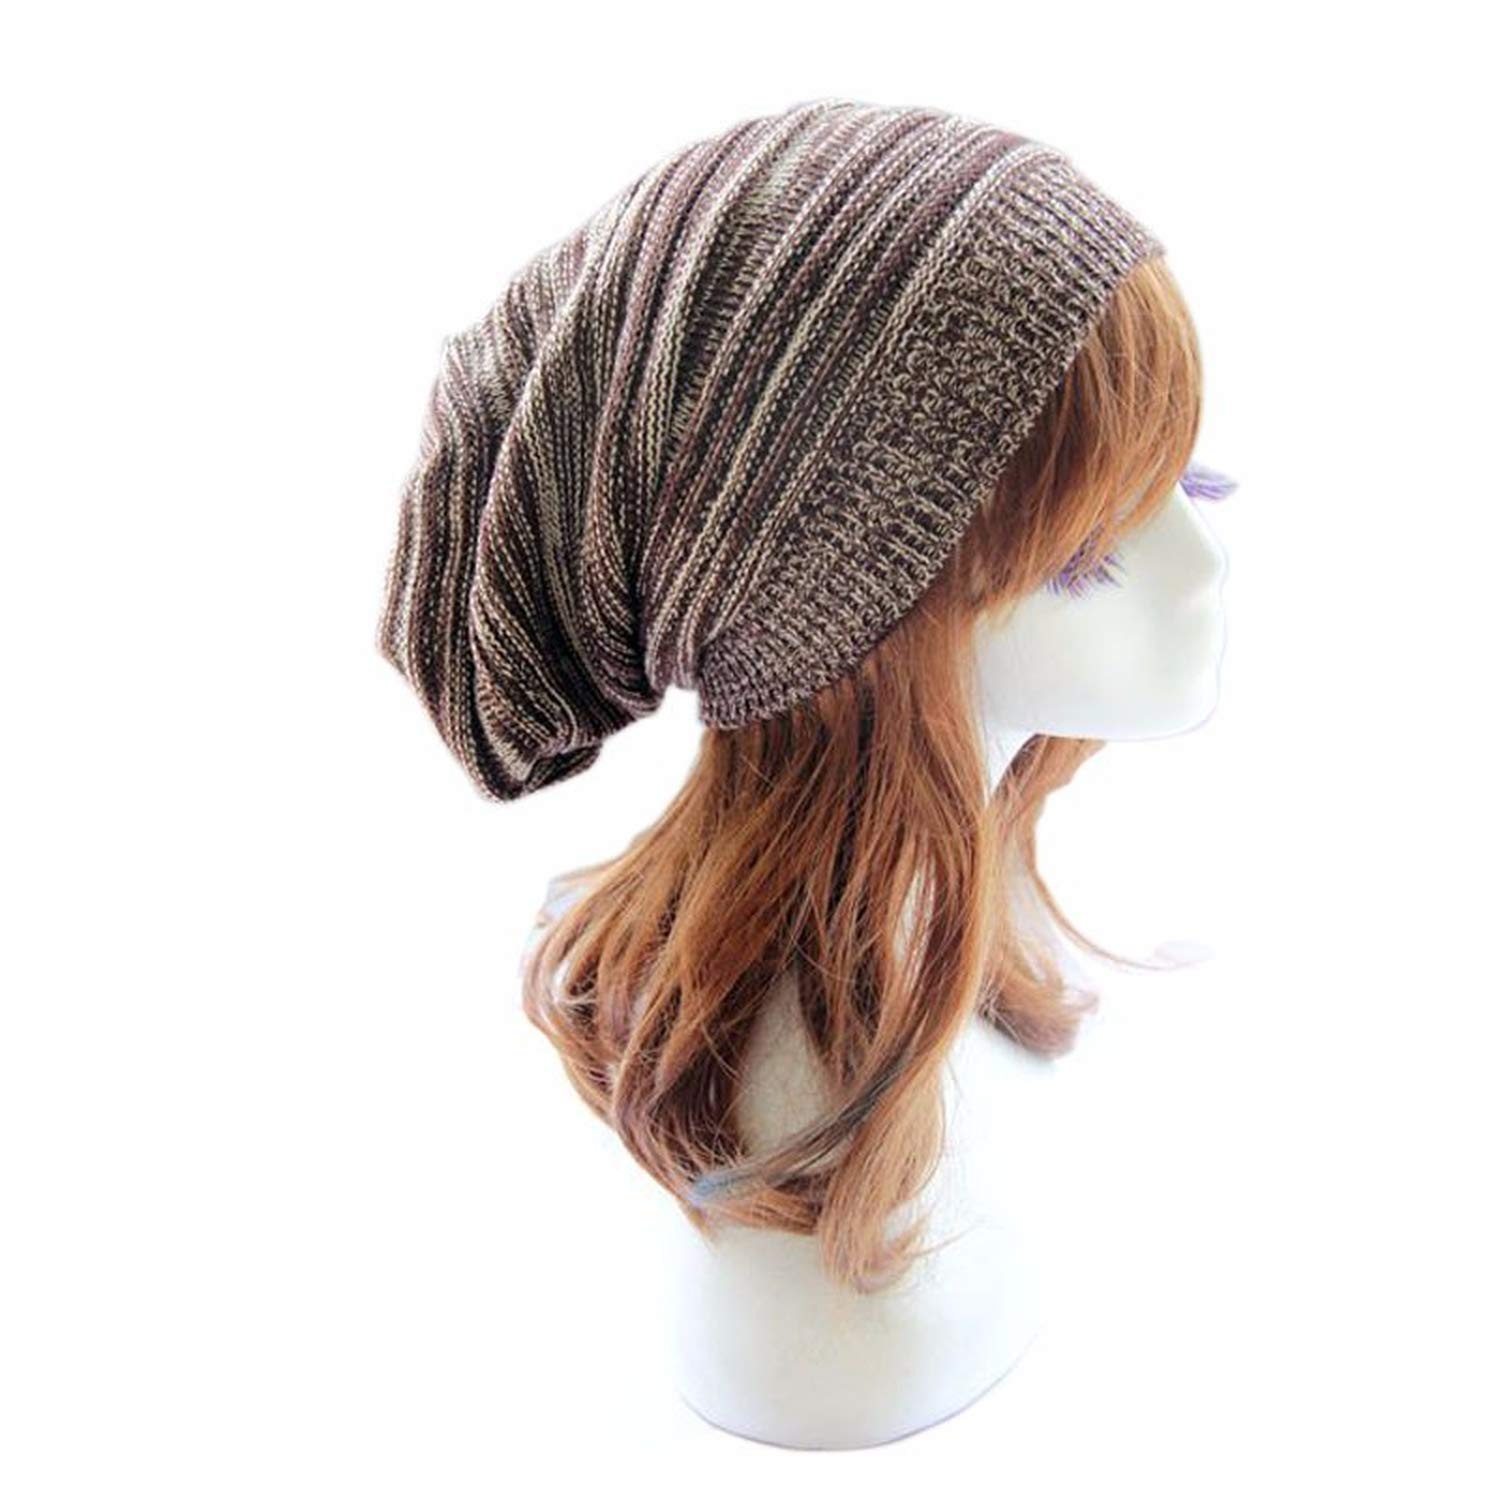 Soft Rabbit Double Knitting Thick Bonnet Caps Solid Warm Winter Hats for Womens Cap Skullies Beanies